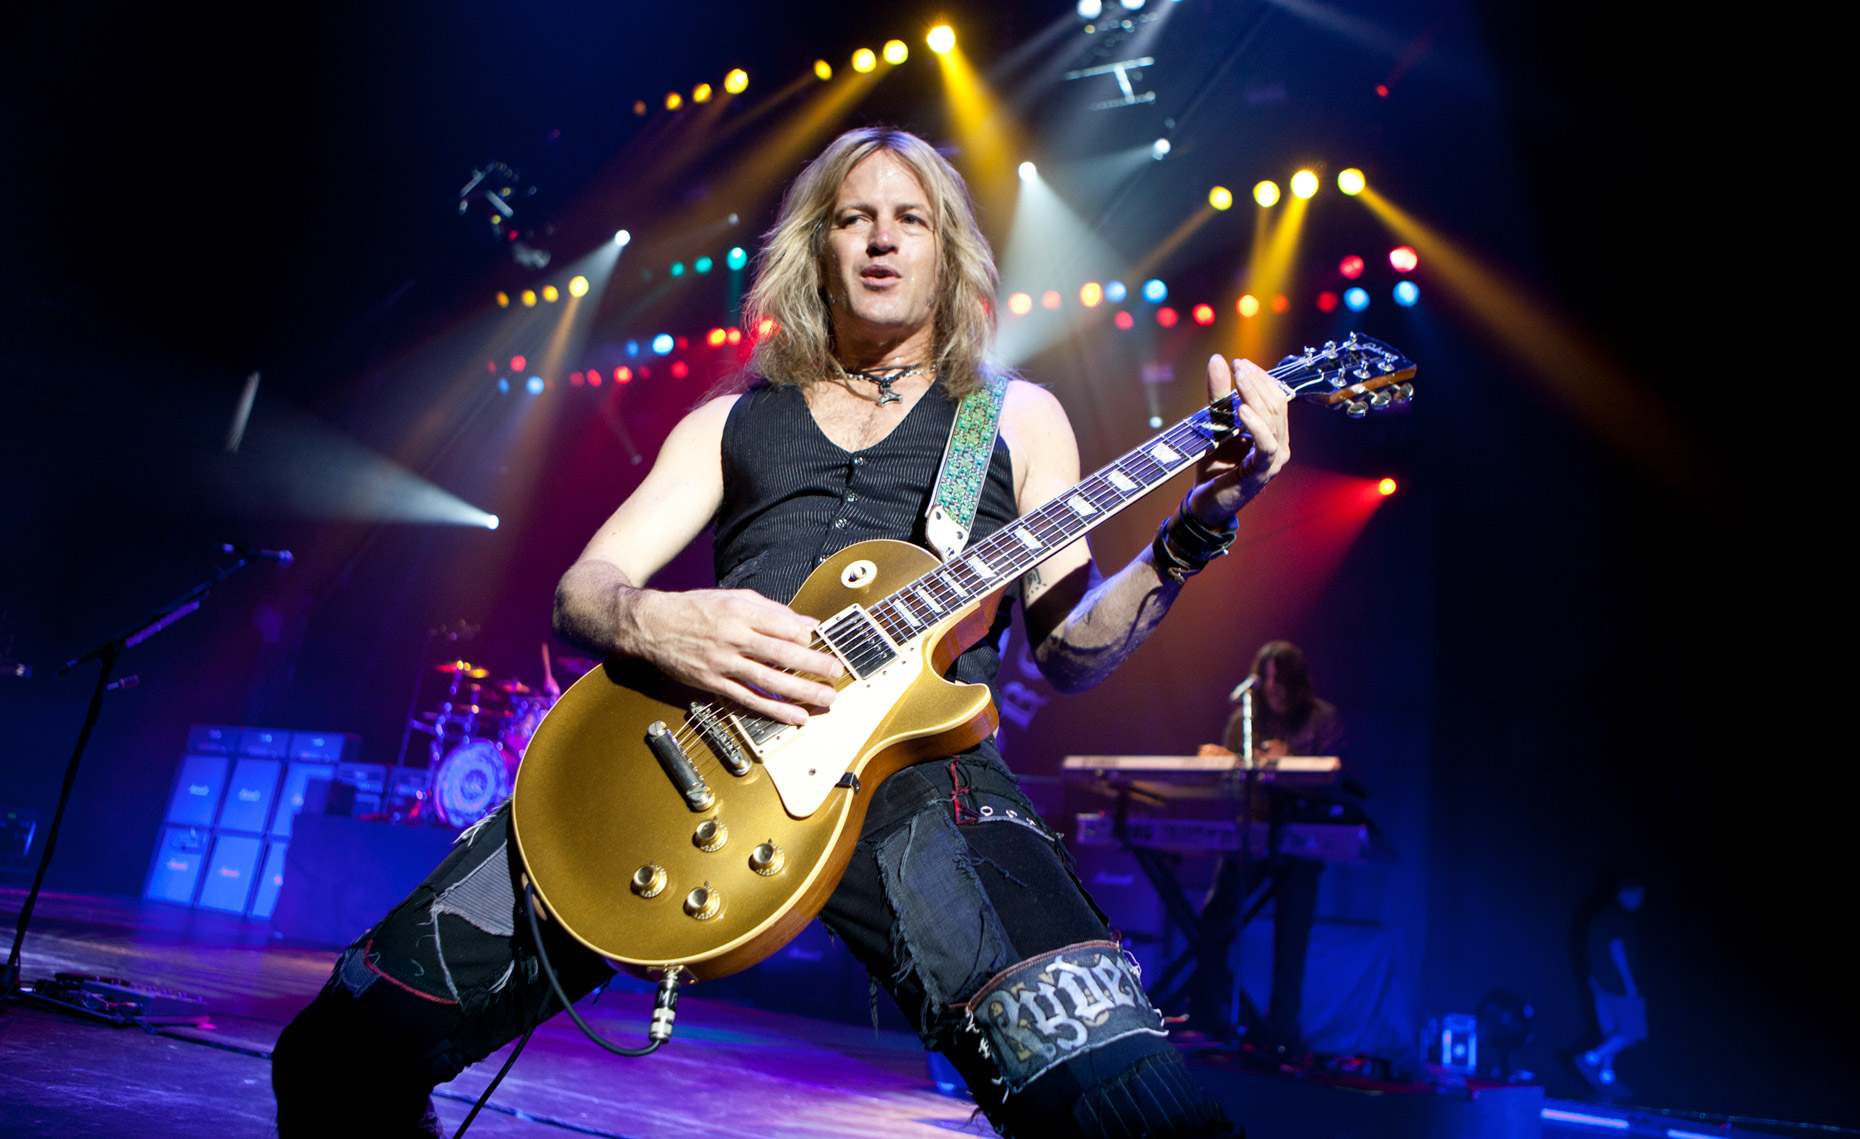 Doug-Aldrich_Angus-Thomas-Photography